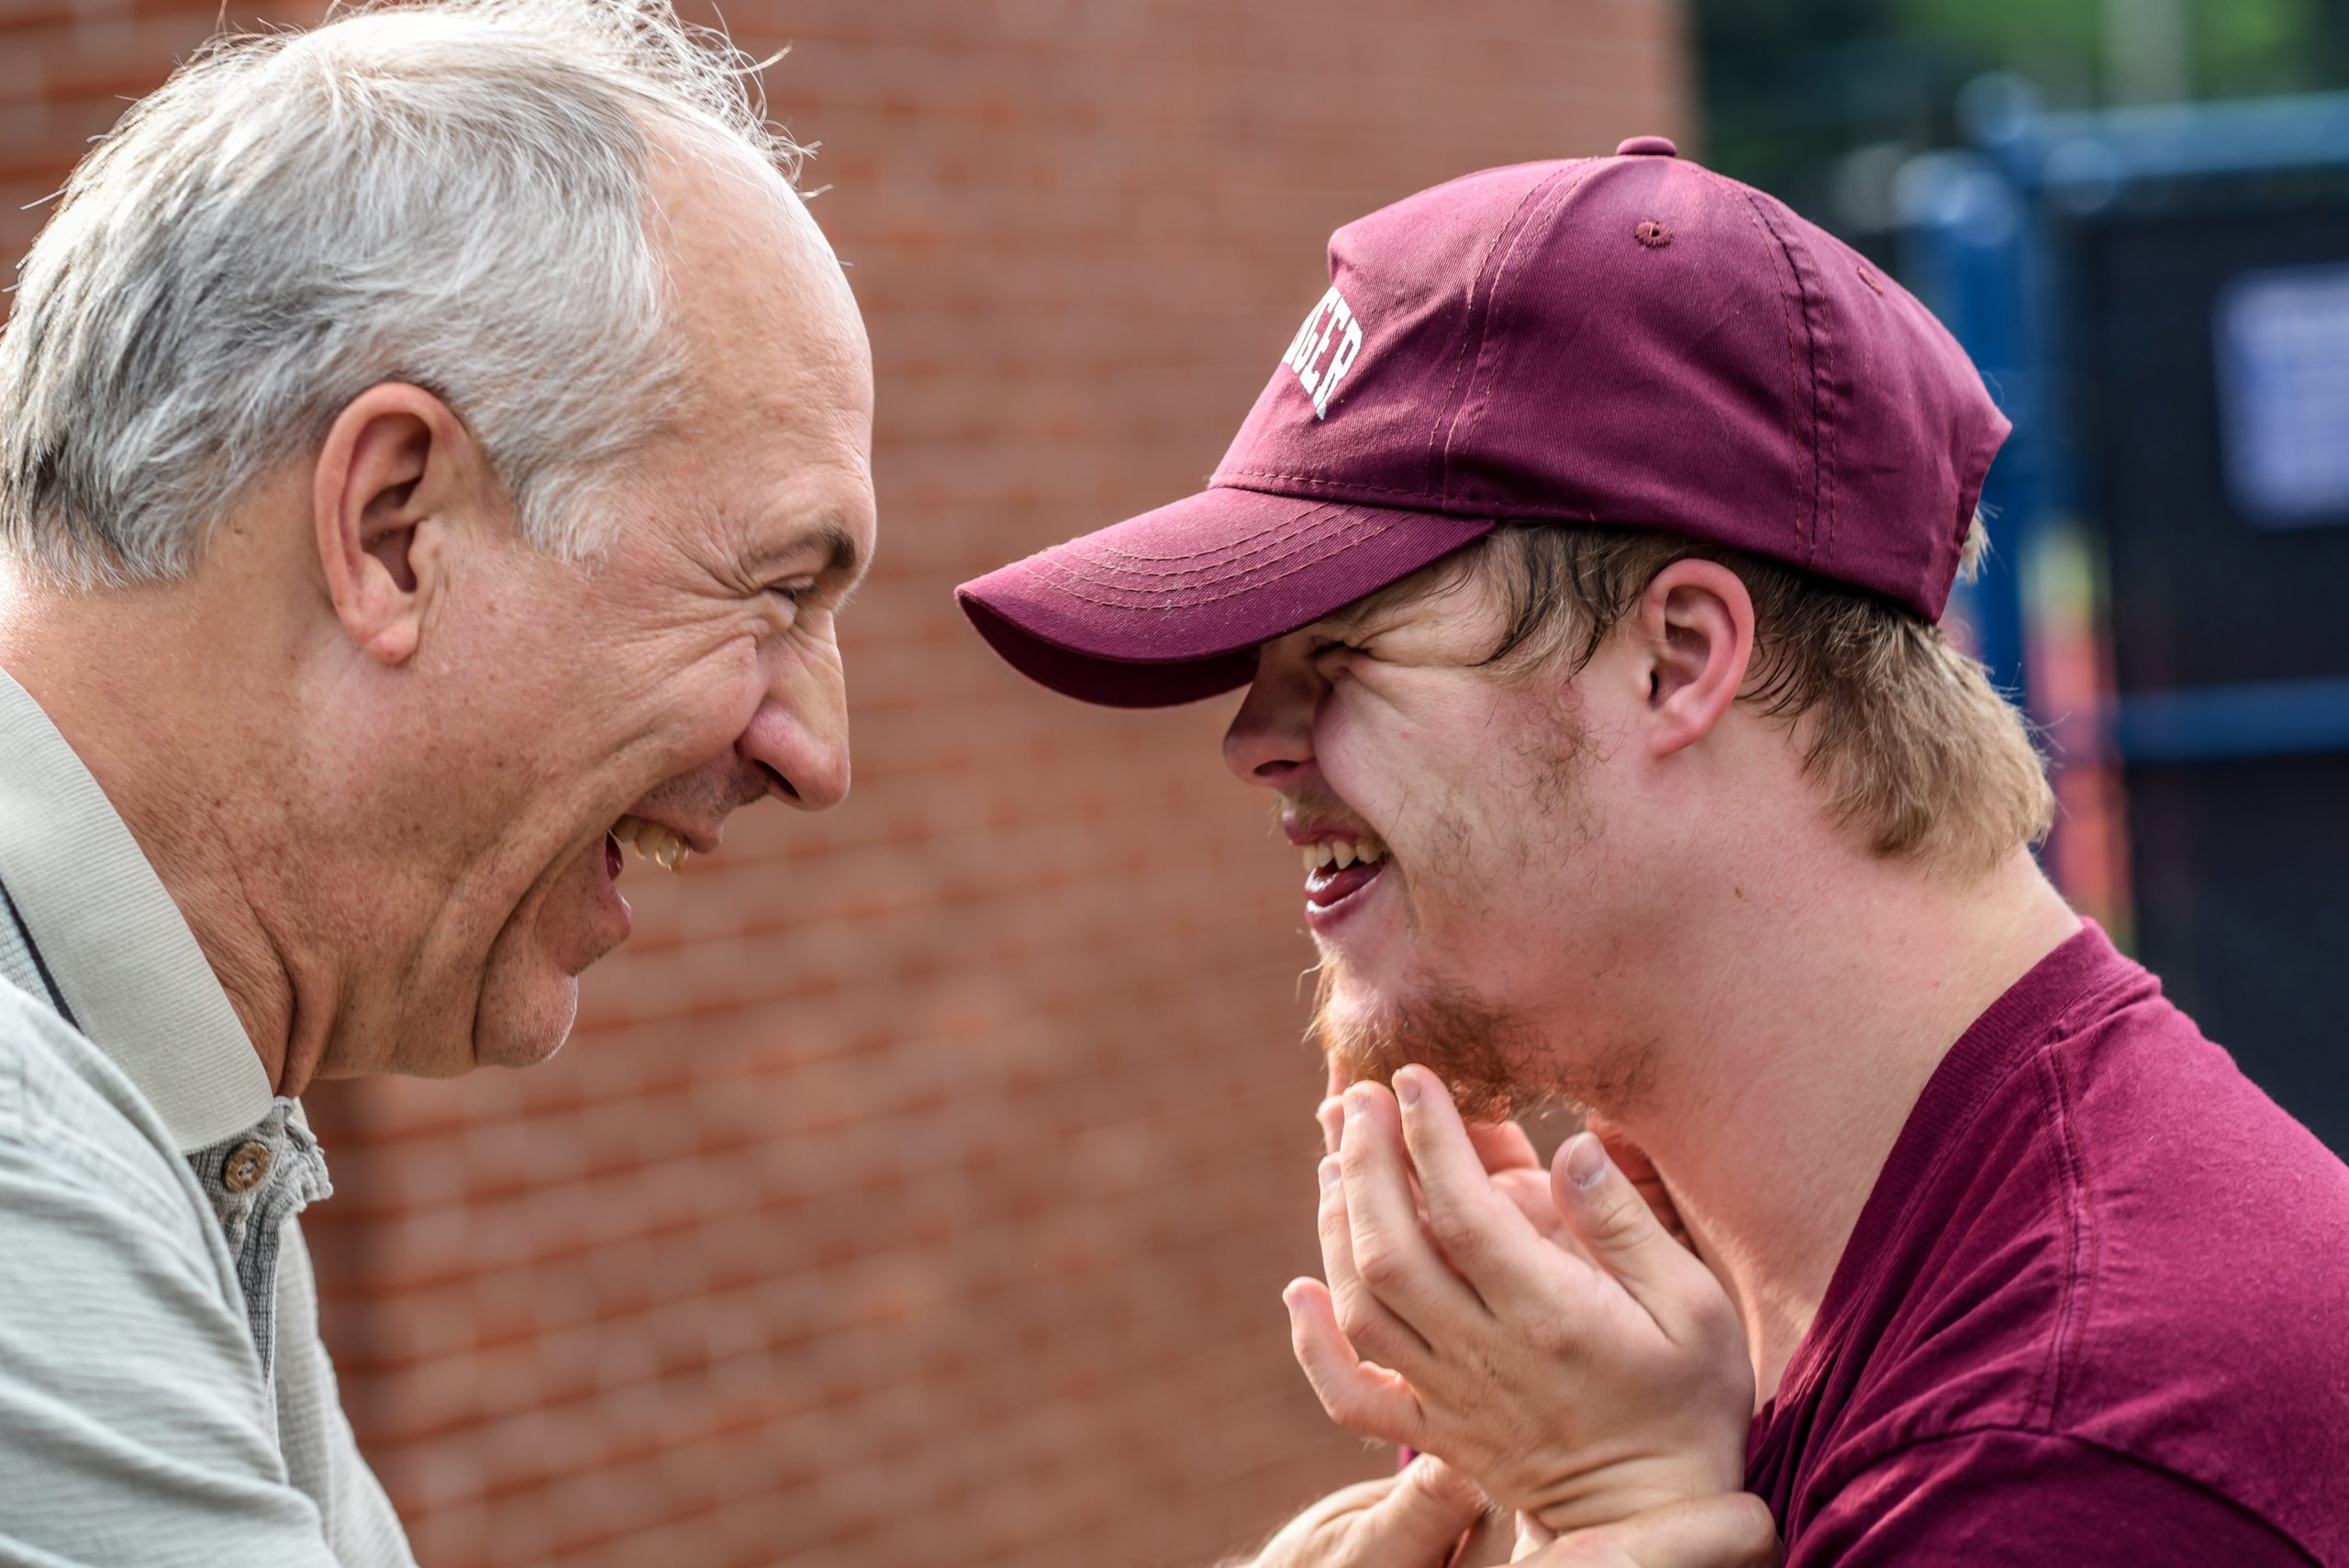 A man with down's syndrome smiles at an older man.